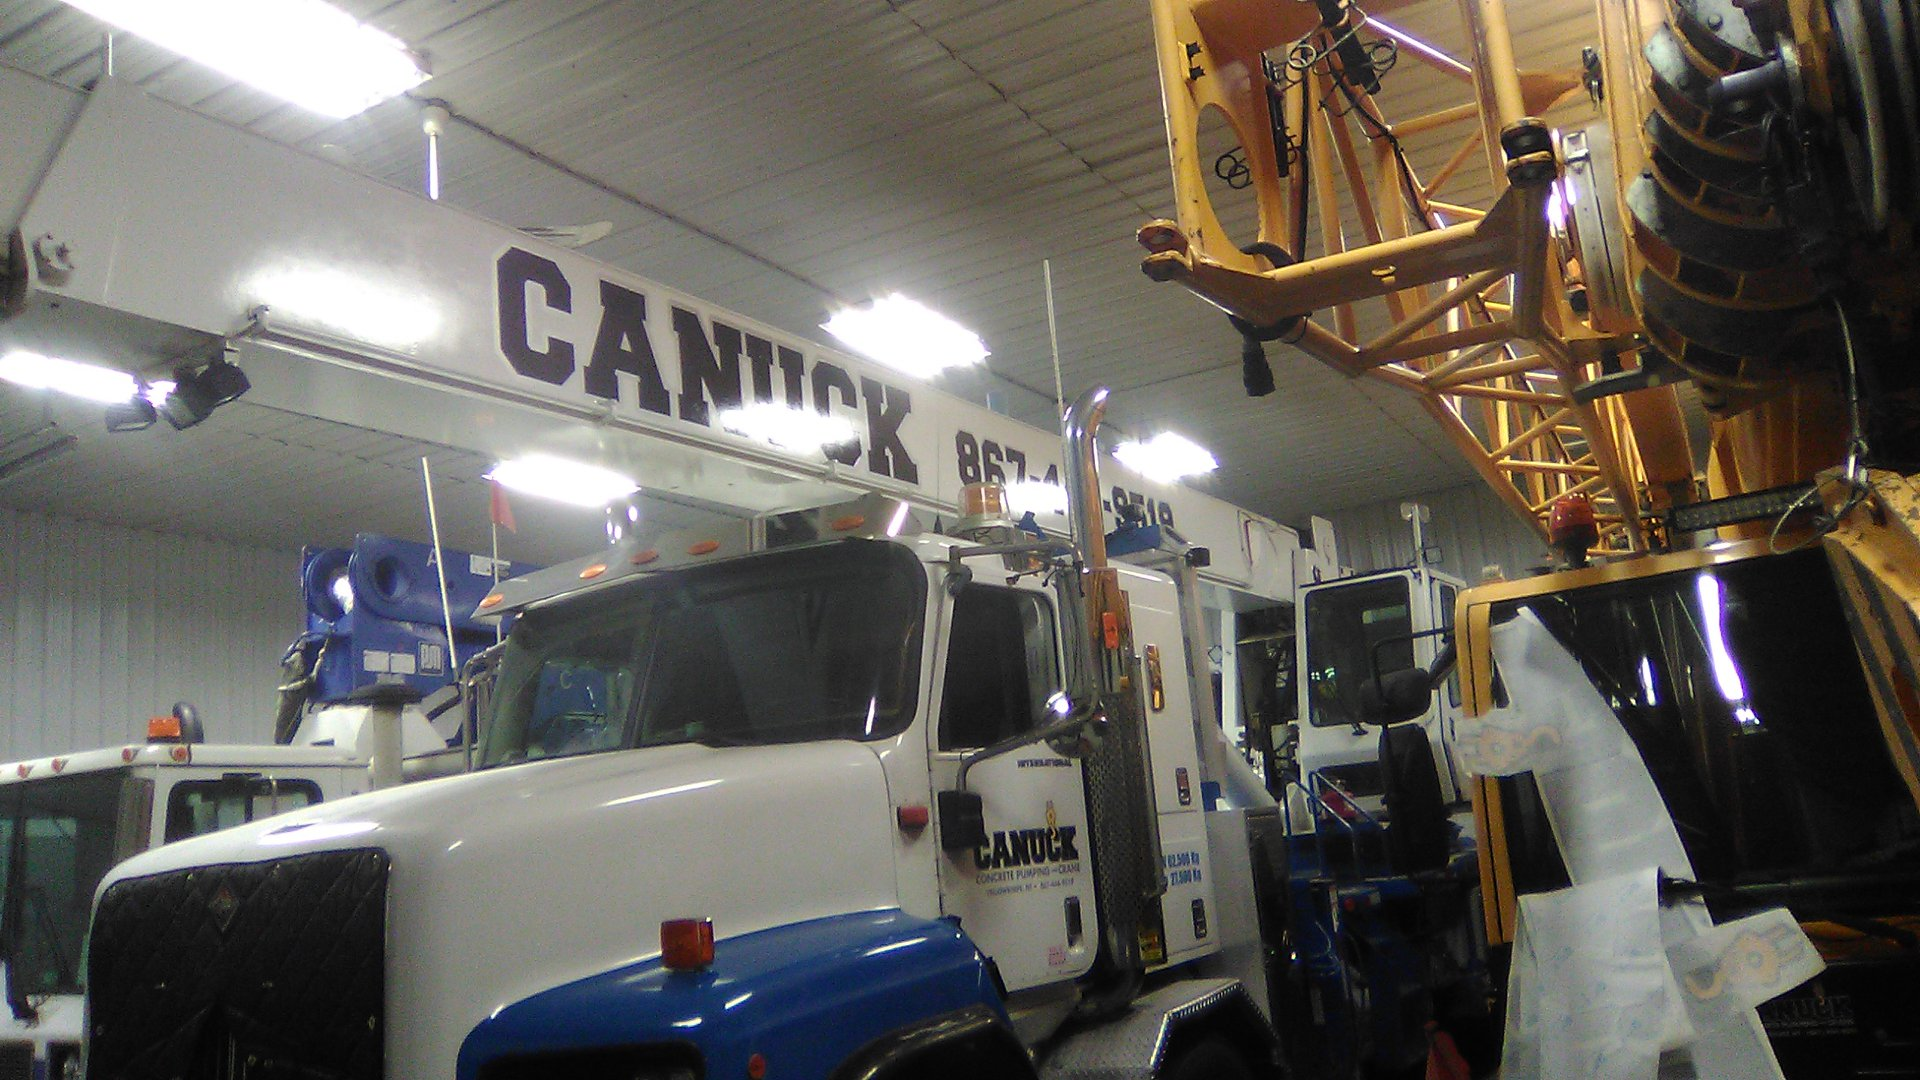 Canuck Pumping Commercial Truck Decals